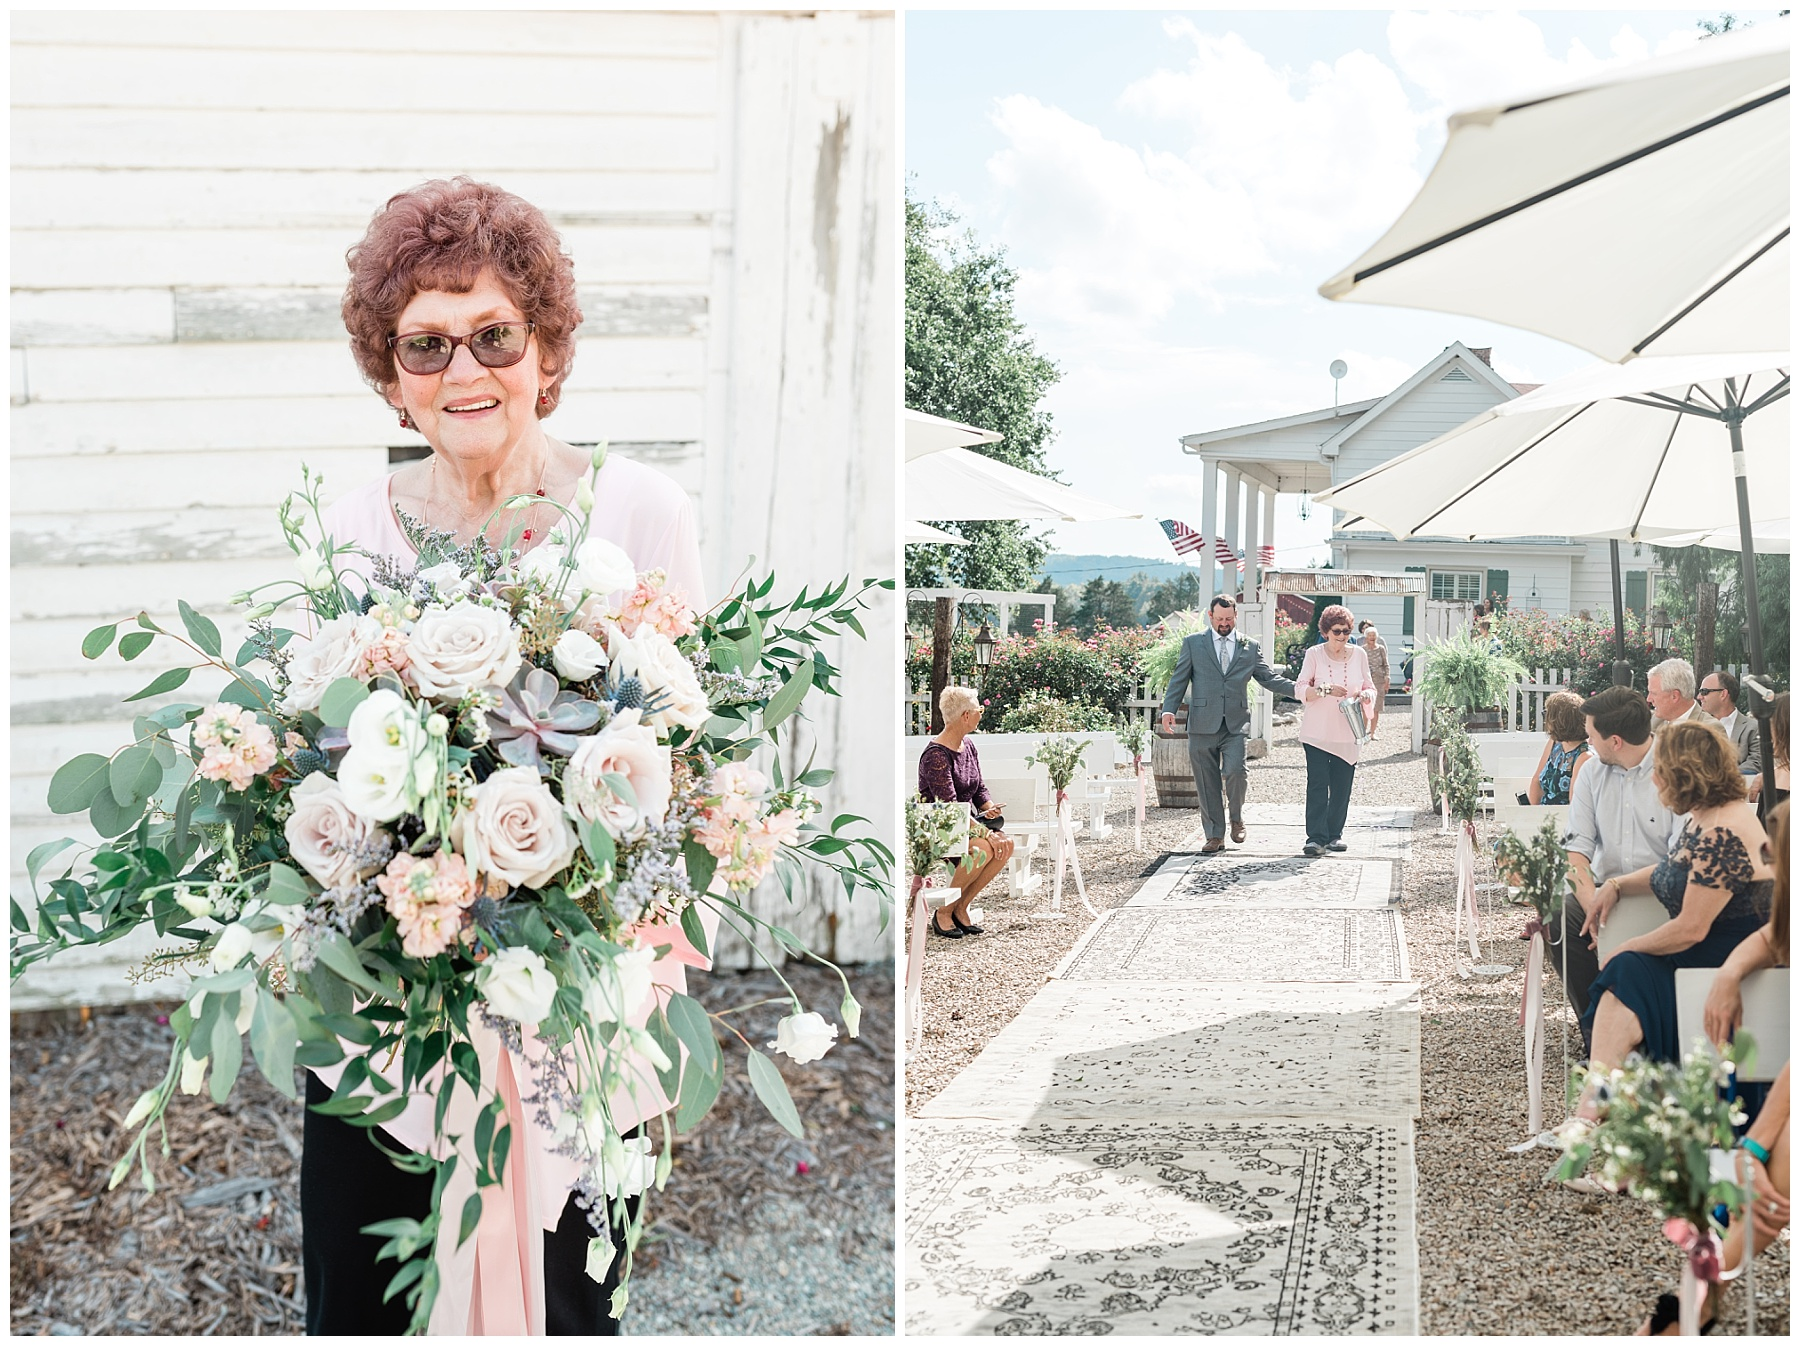 Fine Art Sunset Themed Wedding in Autumn at Dodson Orchards by Kelsi Kliethermes Photography_0019.jpg